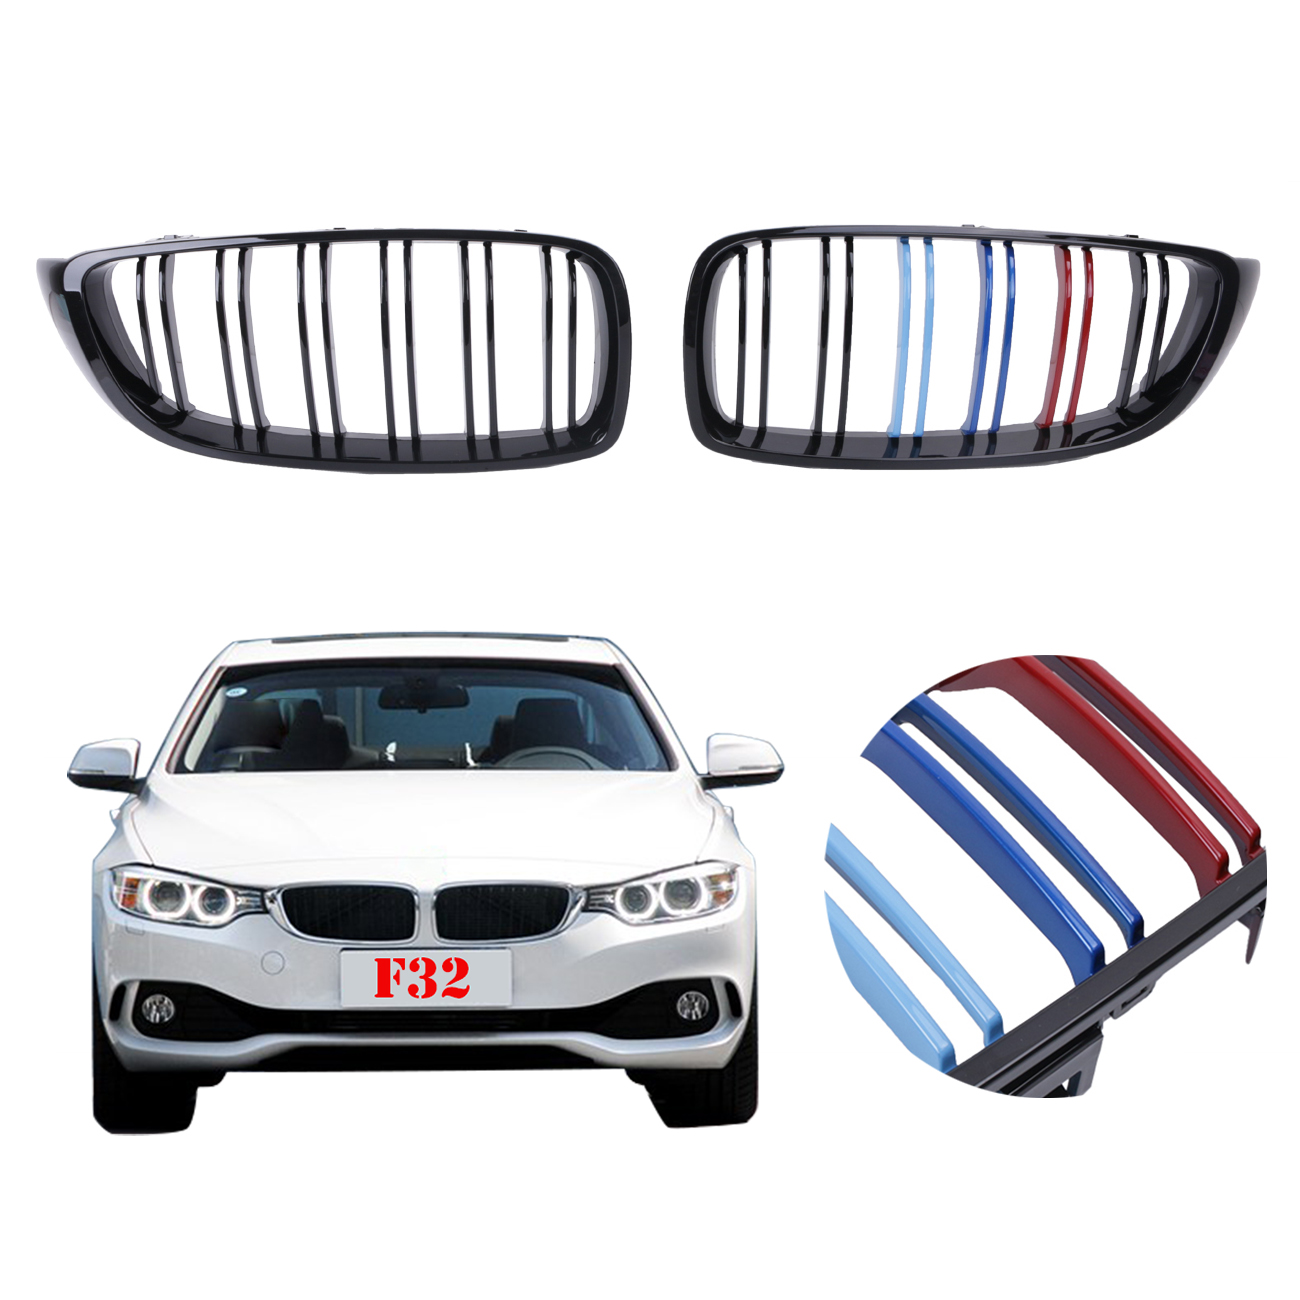 For BMW F32 F33 F36 4 Series 428i 435i 2-DOOR 2014 2015 2016 Front Kidney Grilles Double Slat Grill Gloss Black M-color #P462 2016 new a pair front grilles left and right double line grille gloss black front grills for bmw 3 series e46 2002 2004 4 door